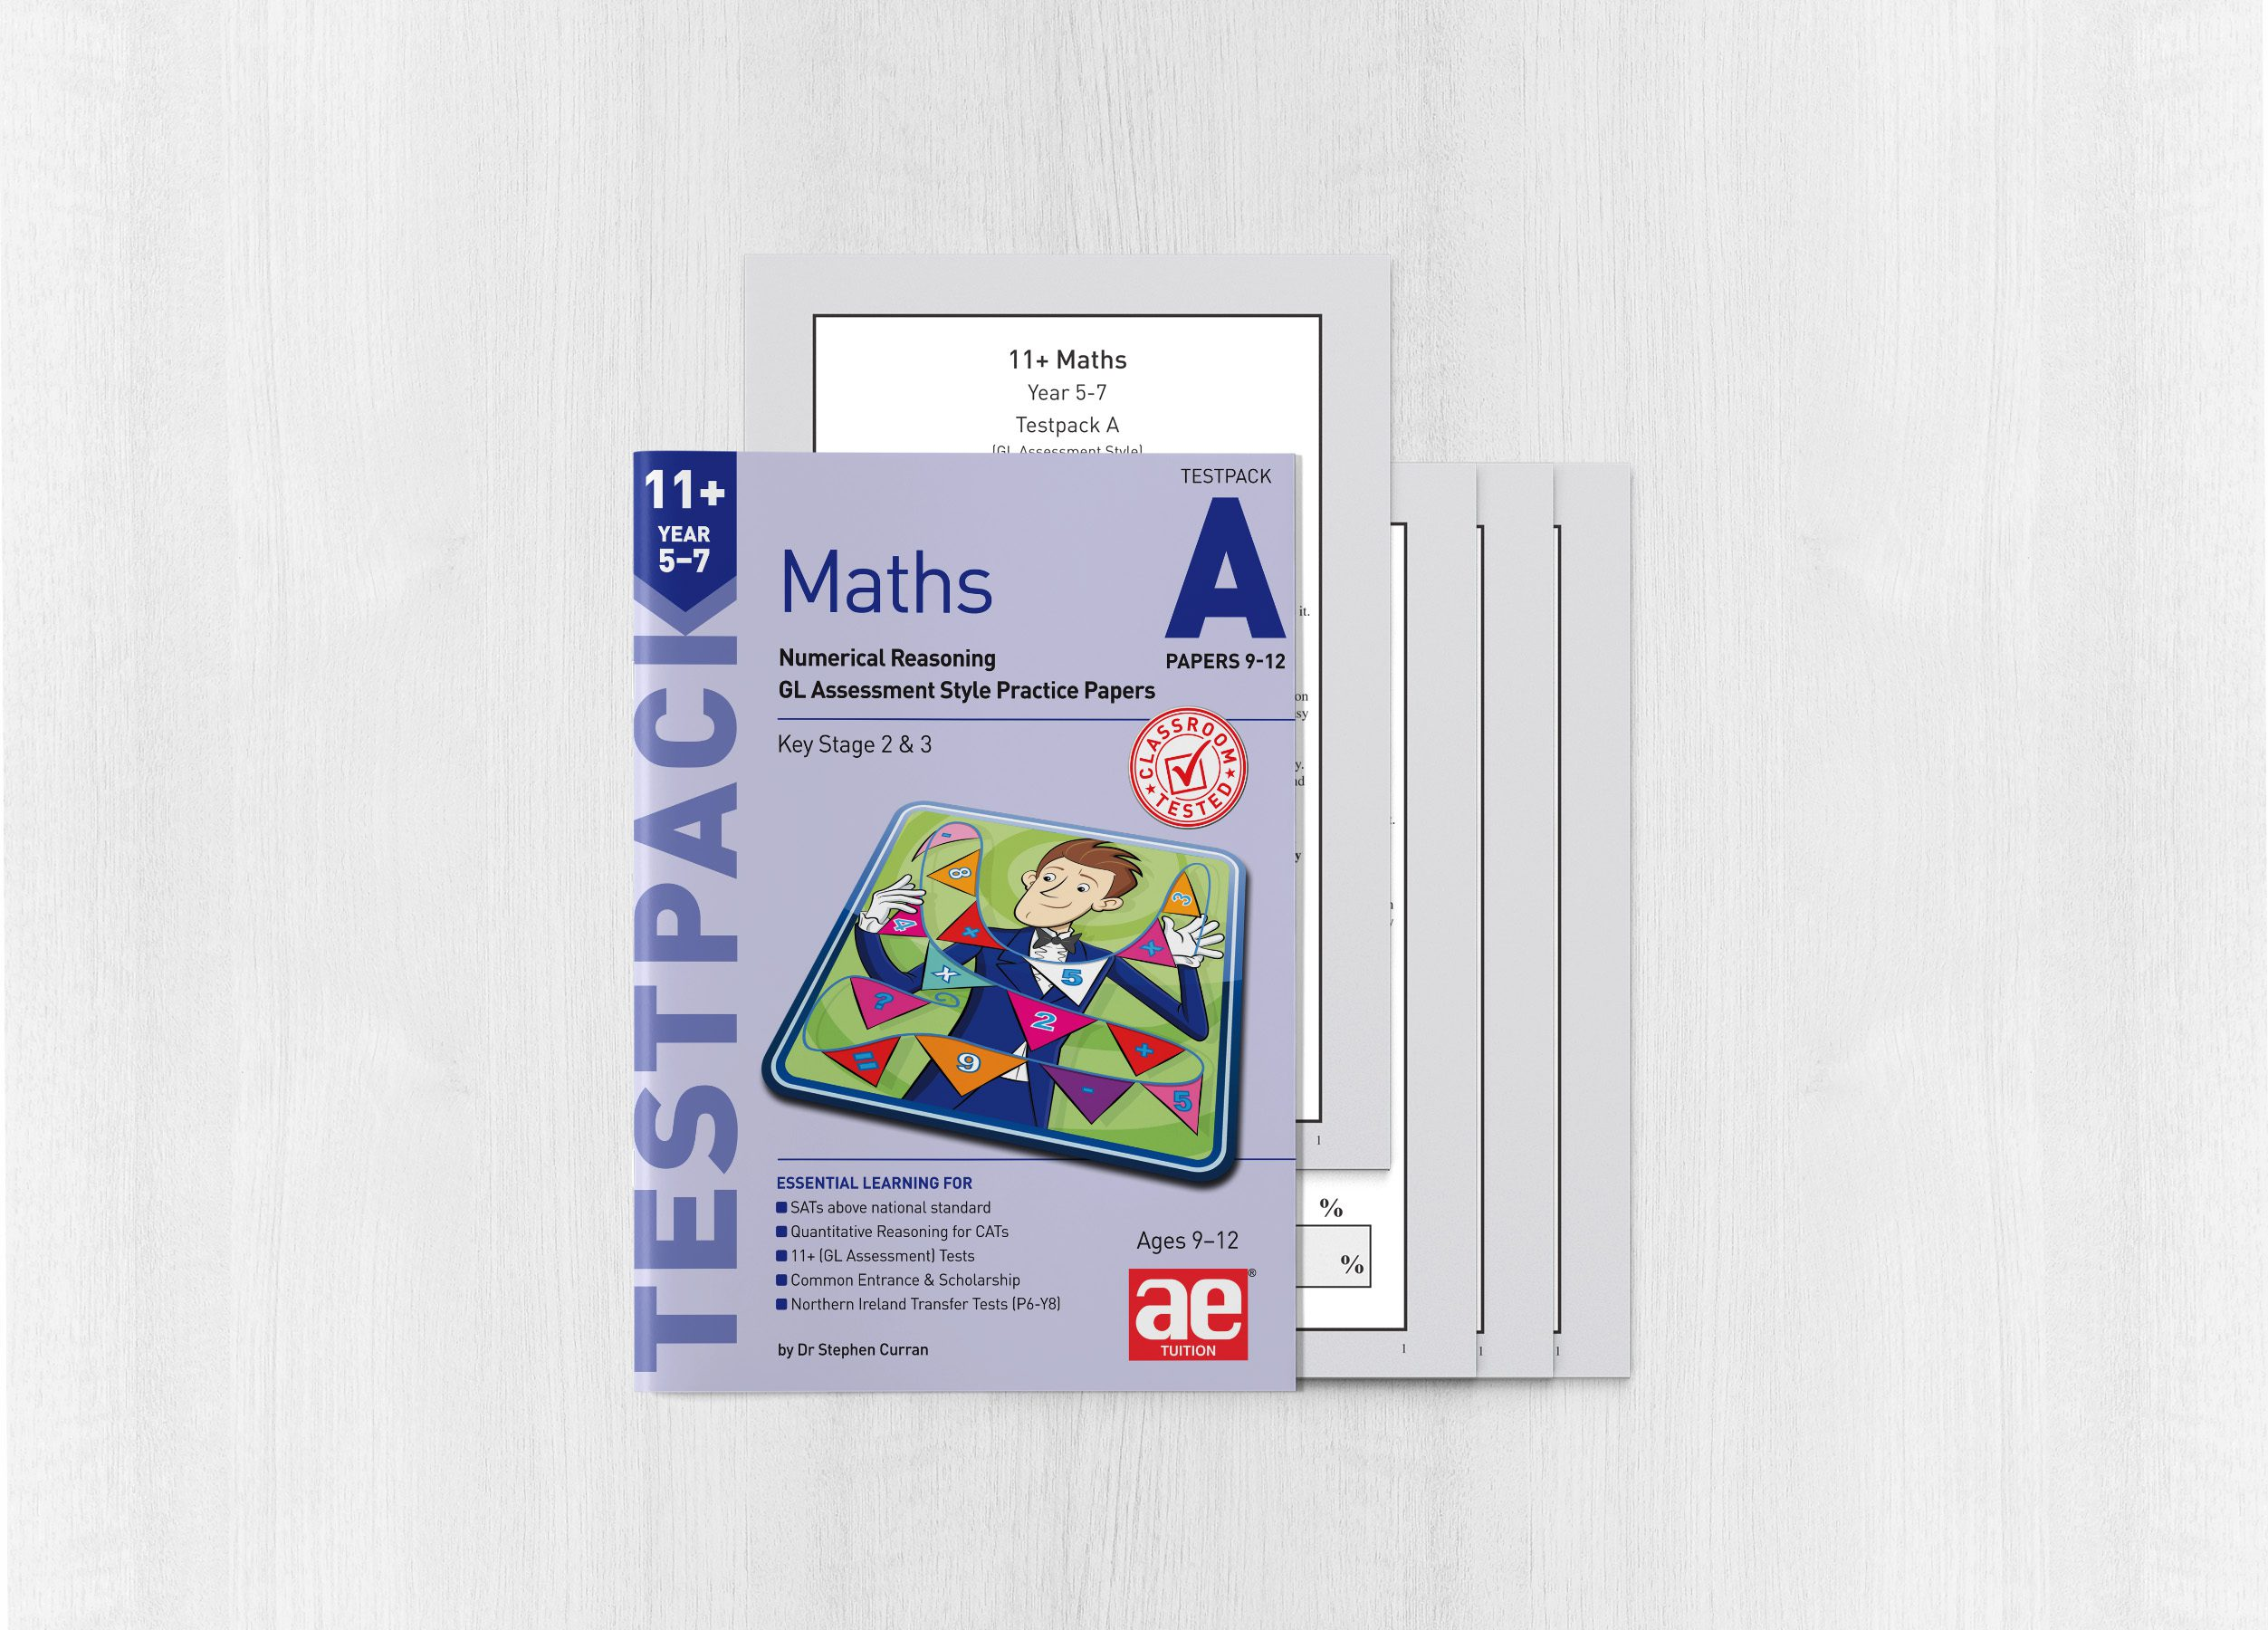 11+ Maths Year 5-7 Testpack A Papers 9-12 - AE Publications